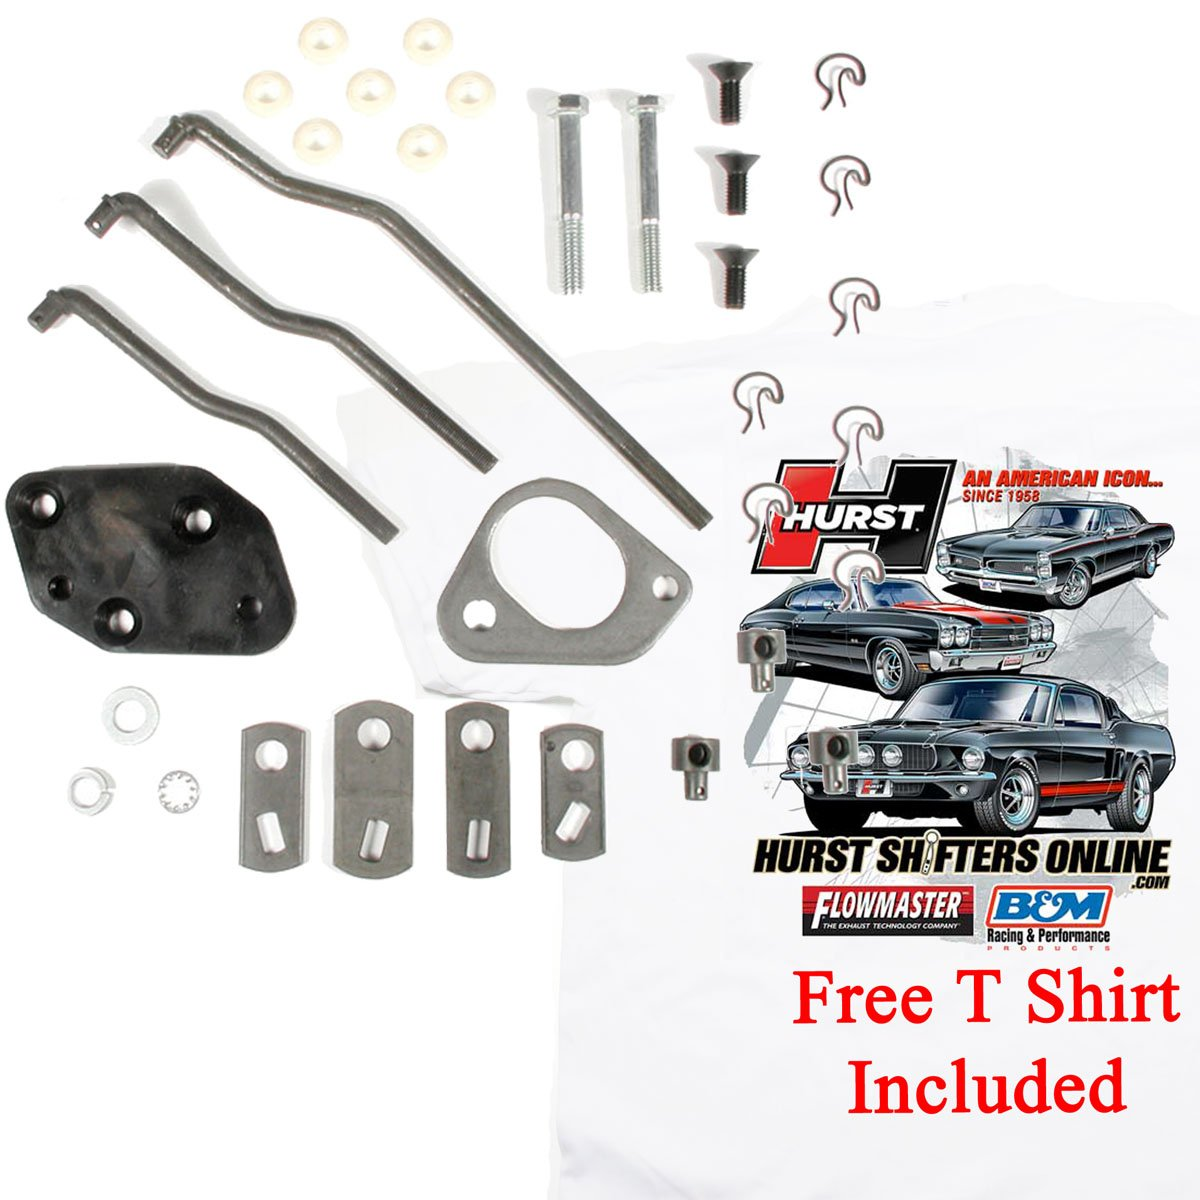 Hurst Comp 4 Speed Shifter Install Kit 1964 1970 Mopar B Body 422 A833 Plymouth Fog Lights Wiring Diagram W T Shirt